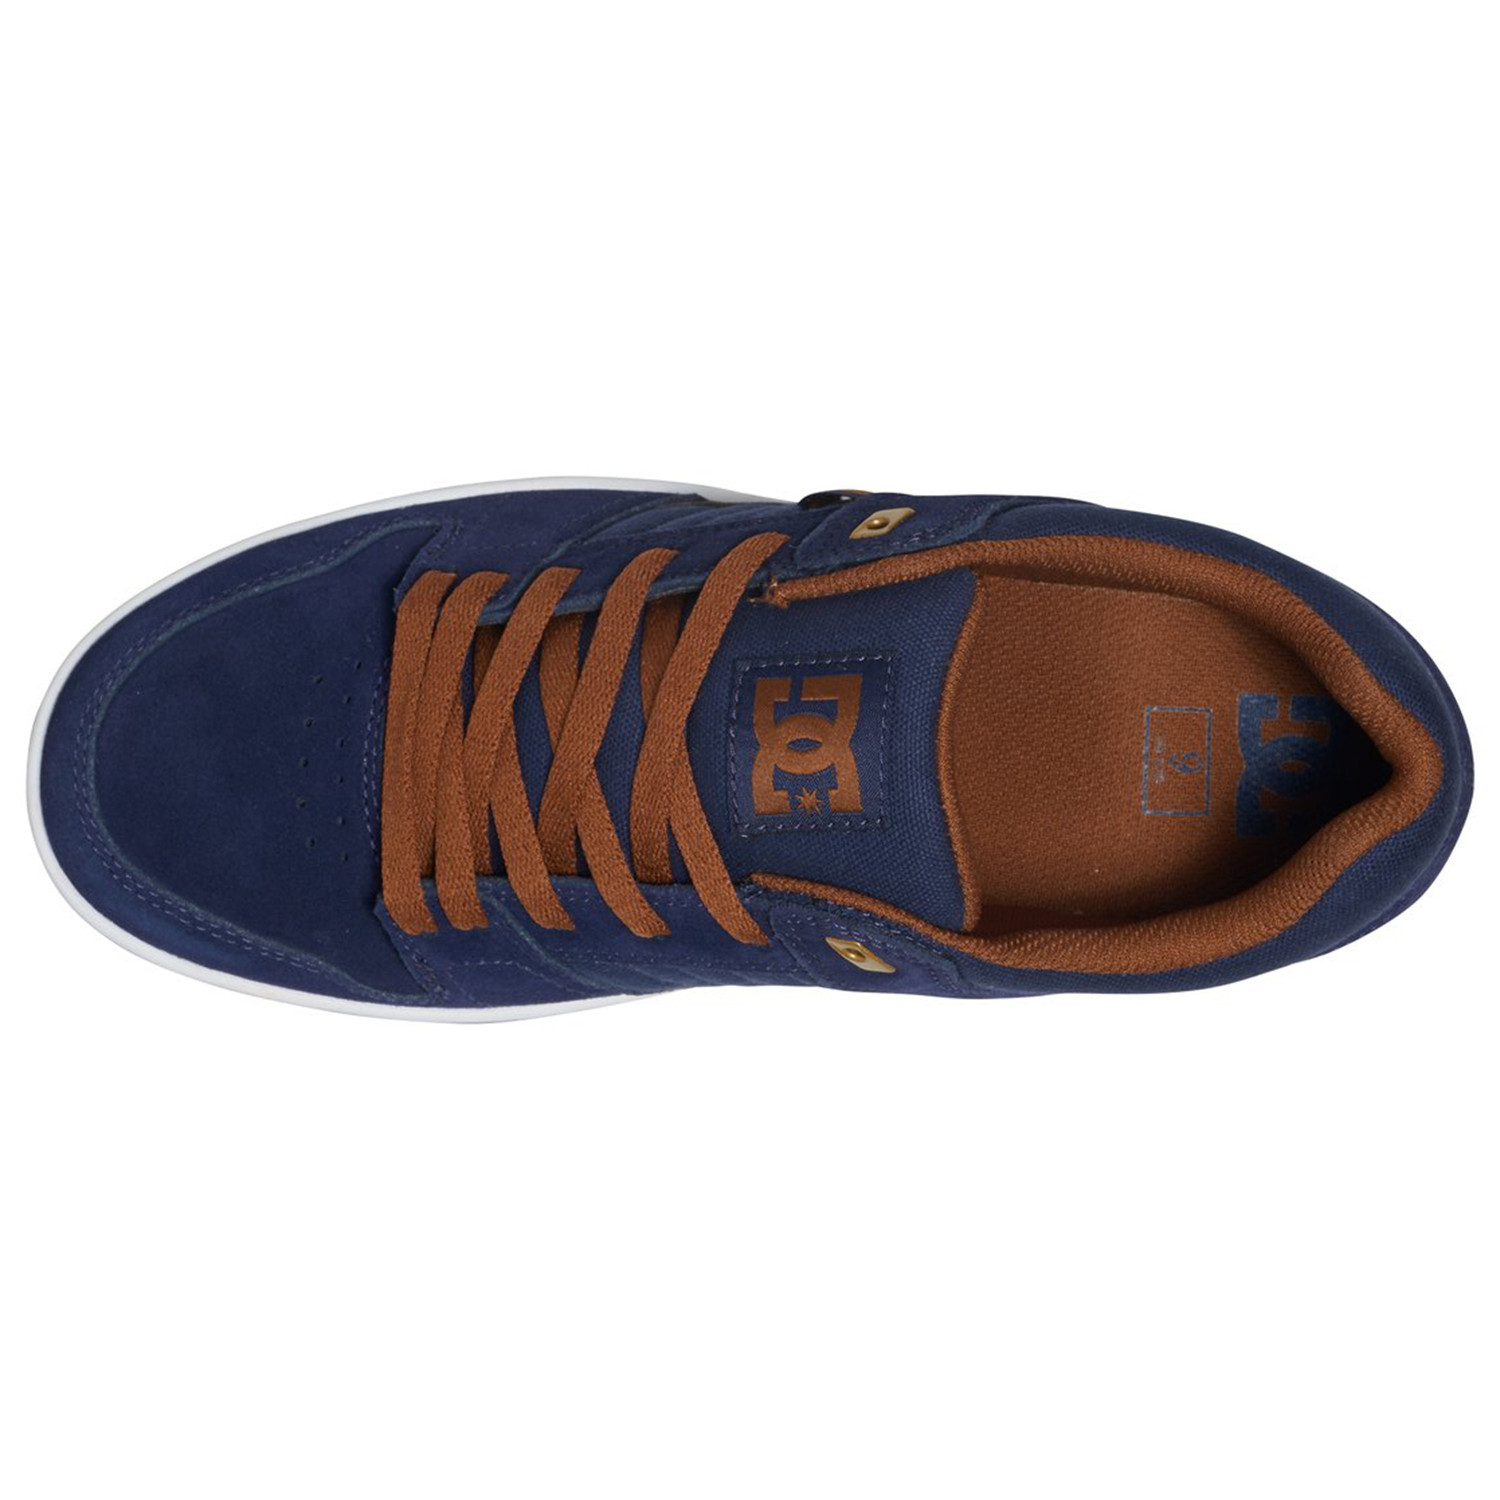 Course 2 Chaussure Homme